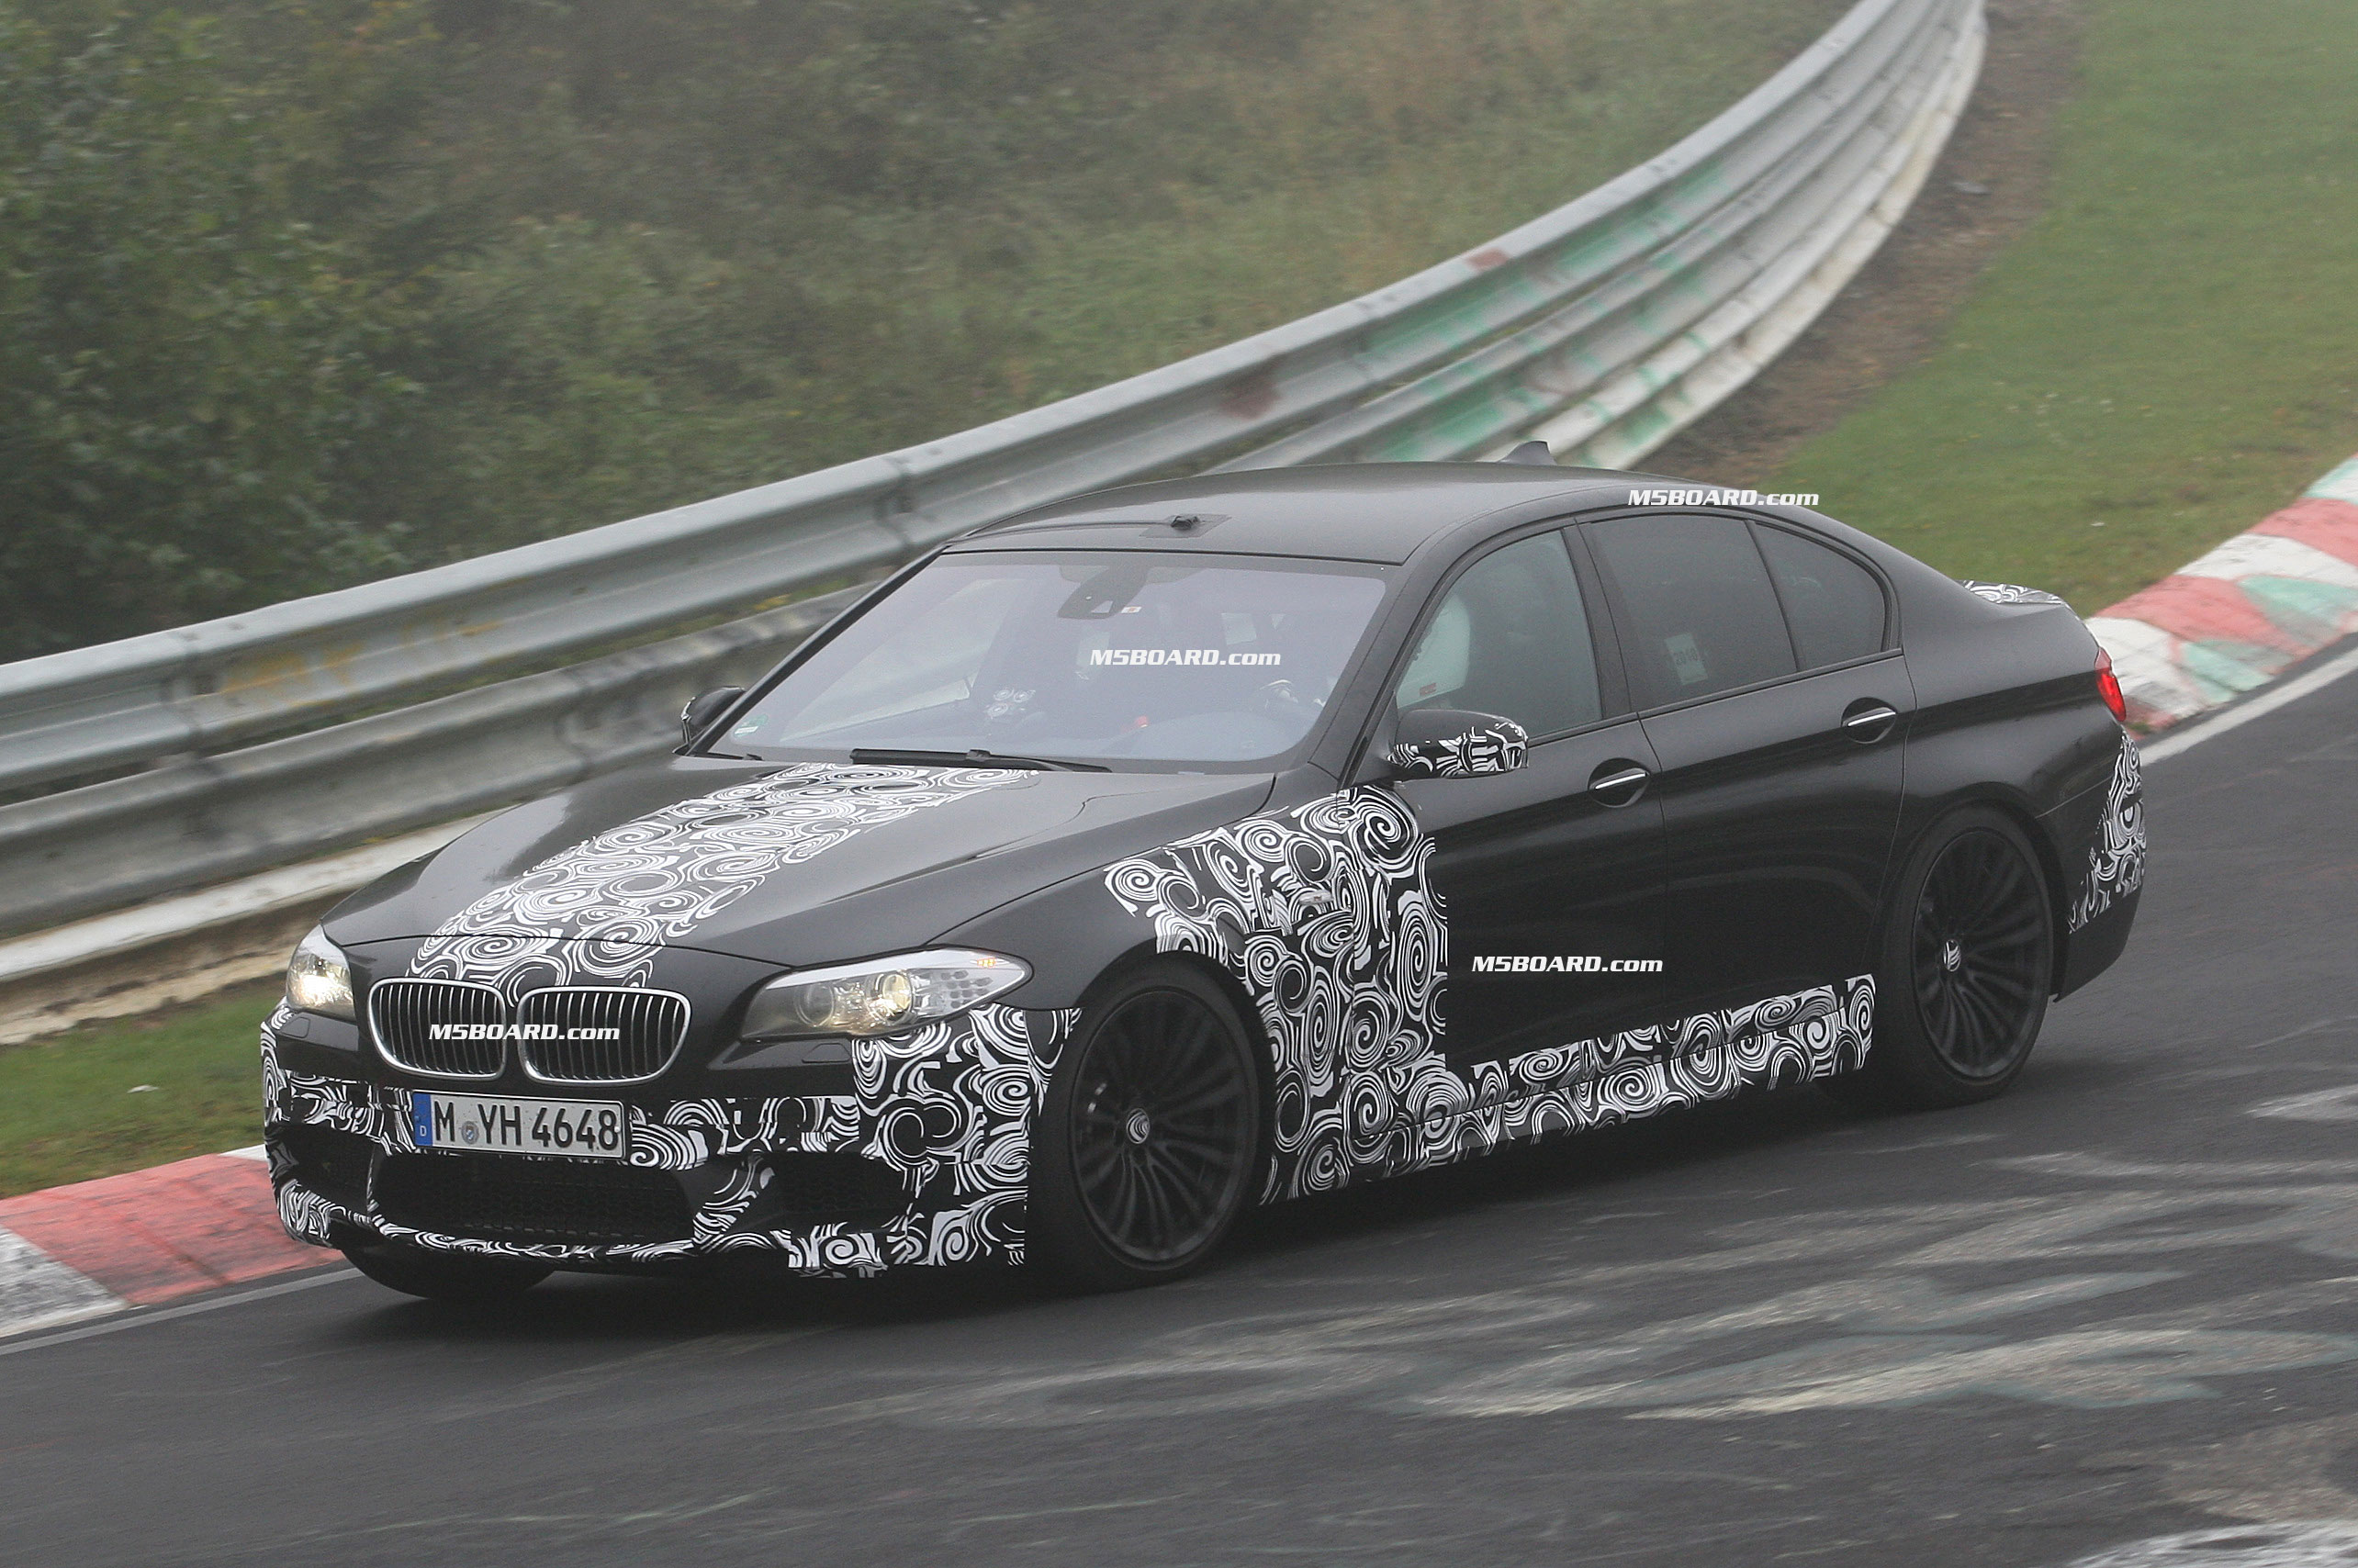 BMW M5 F10 twin turbo on Nurburgring Nordschleife and at BMW M Testcenter Nurburgring September 2010-m57.jpg